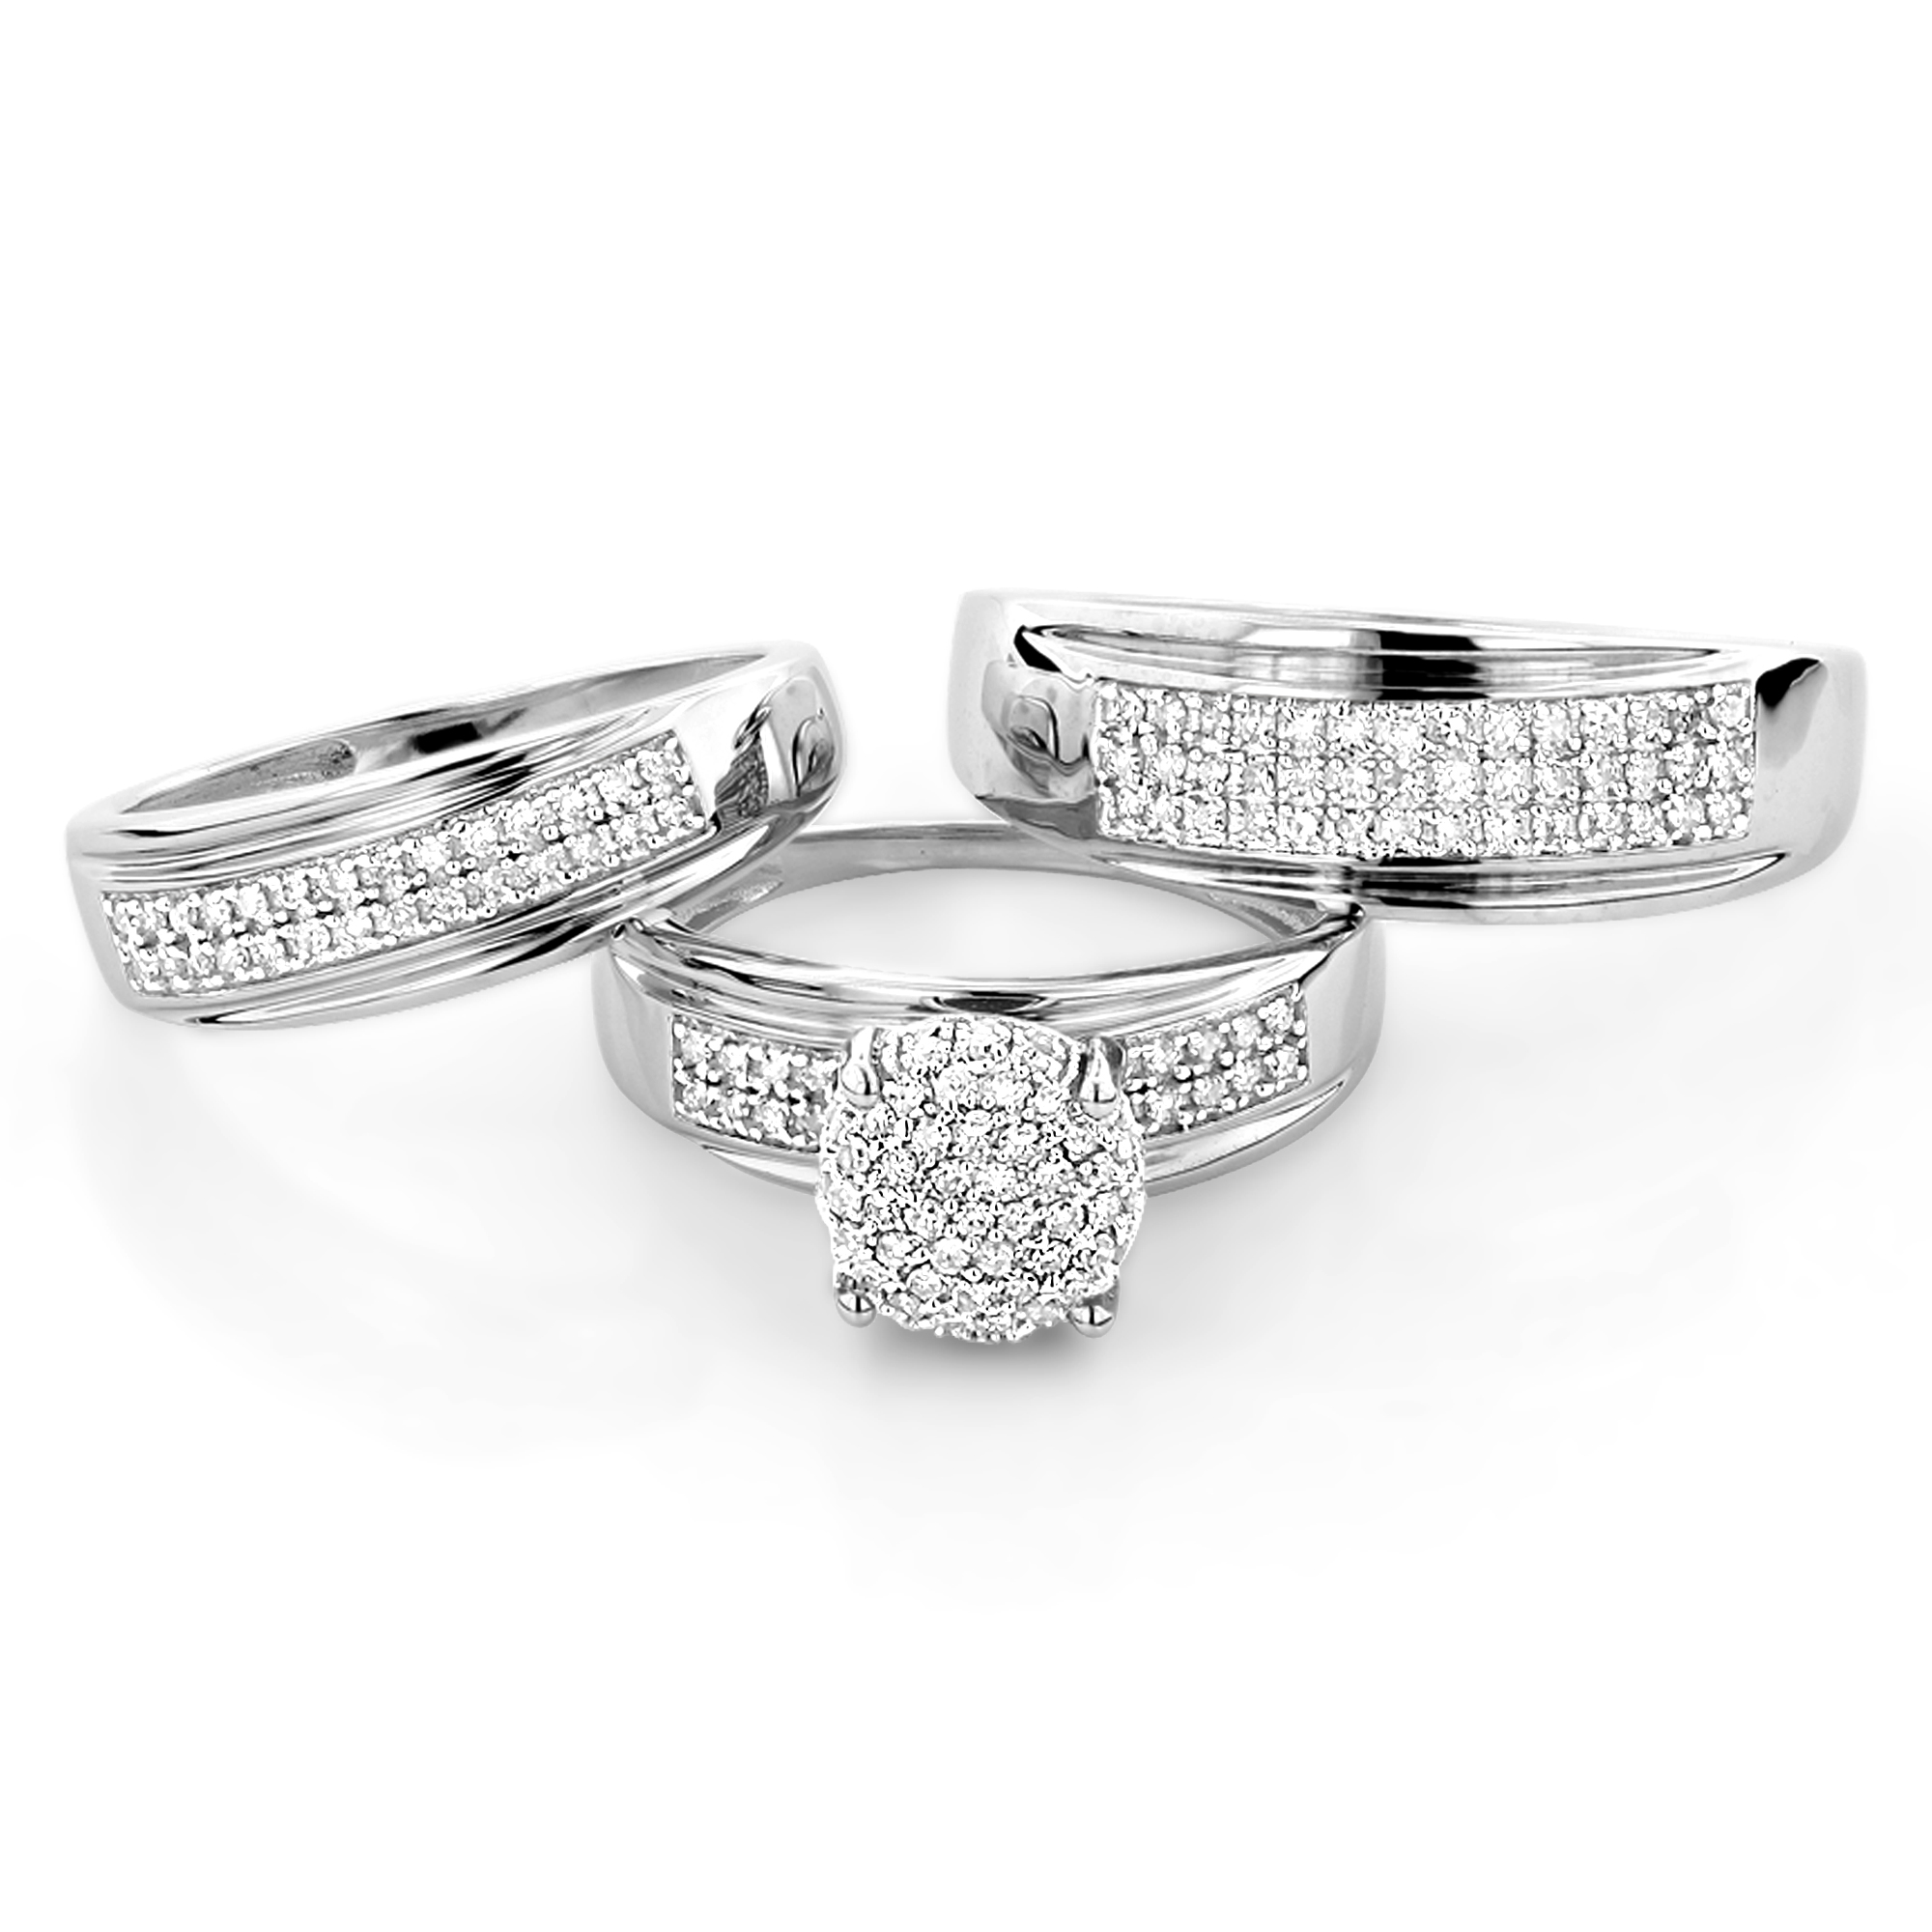 10K Gold Engagement Trio Diamond His and Hers Wedding Ring Set 0.95ct Main Image